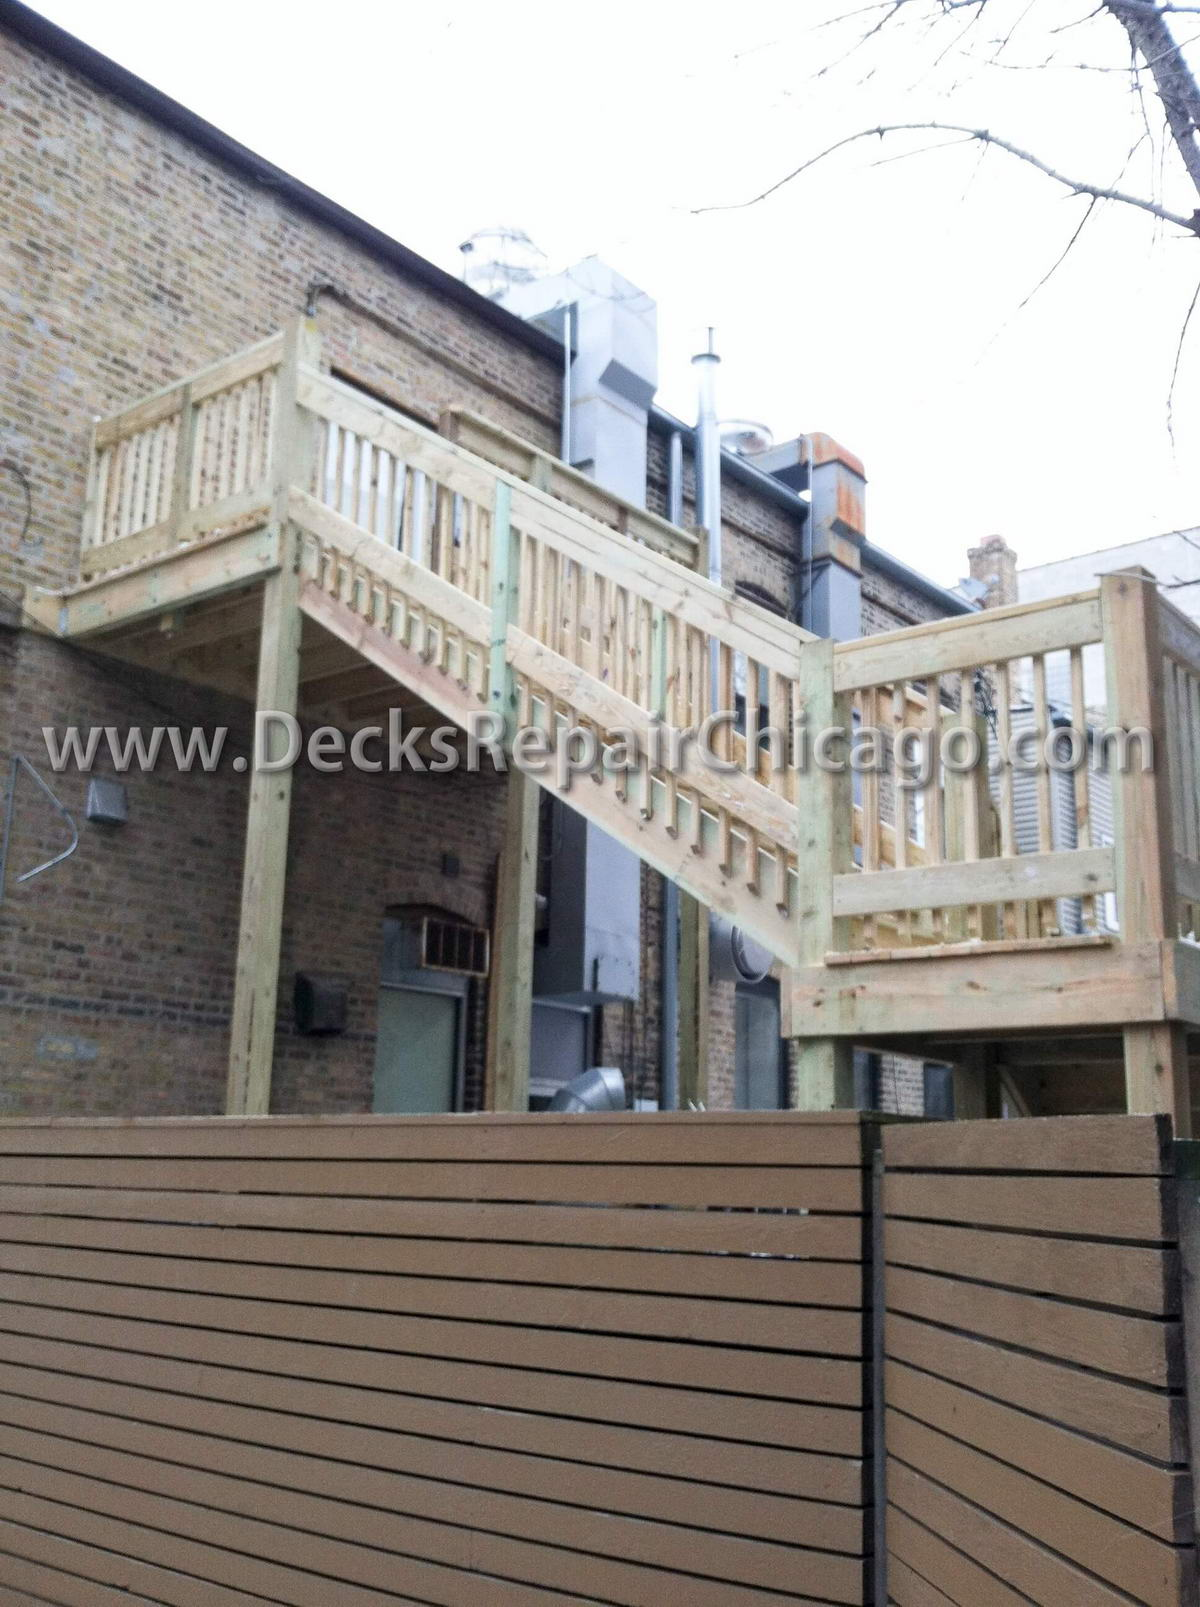 decks-repair-chicago-buff-construction-17_resize.jpg